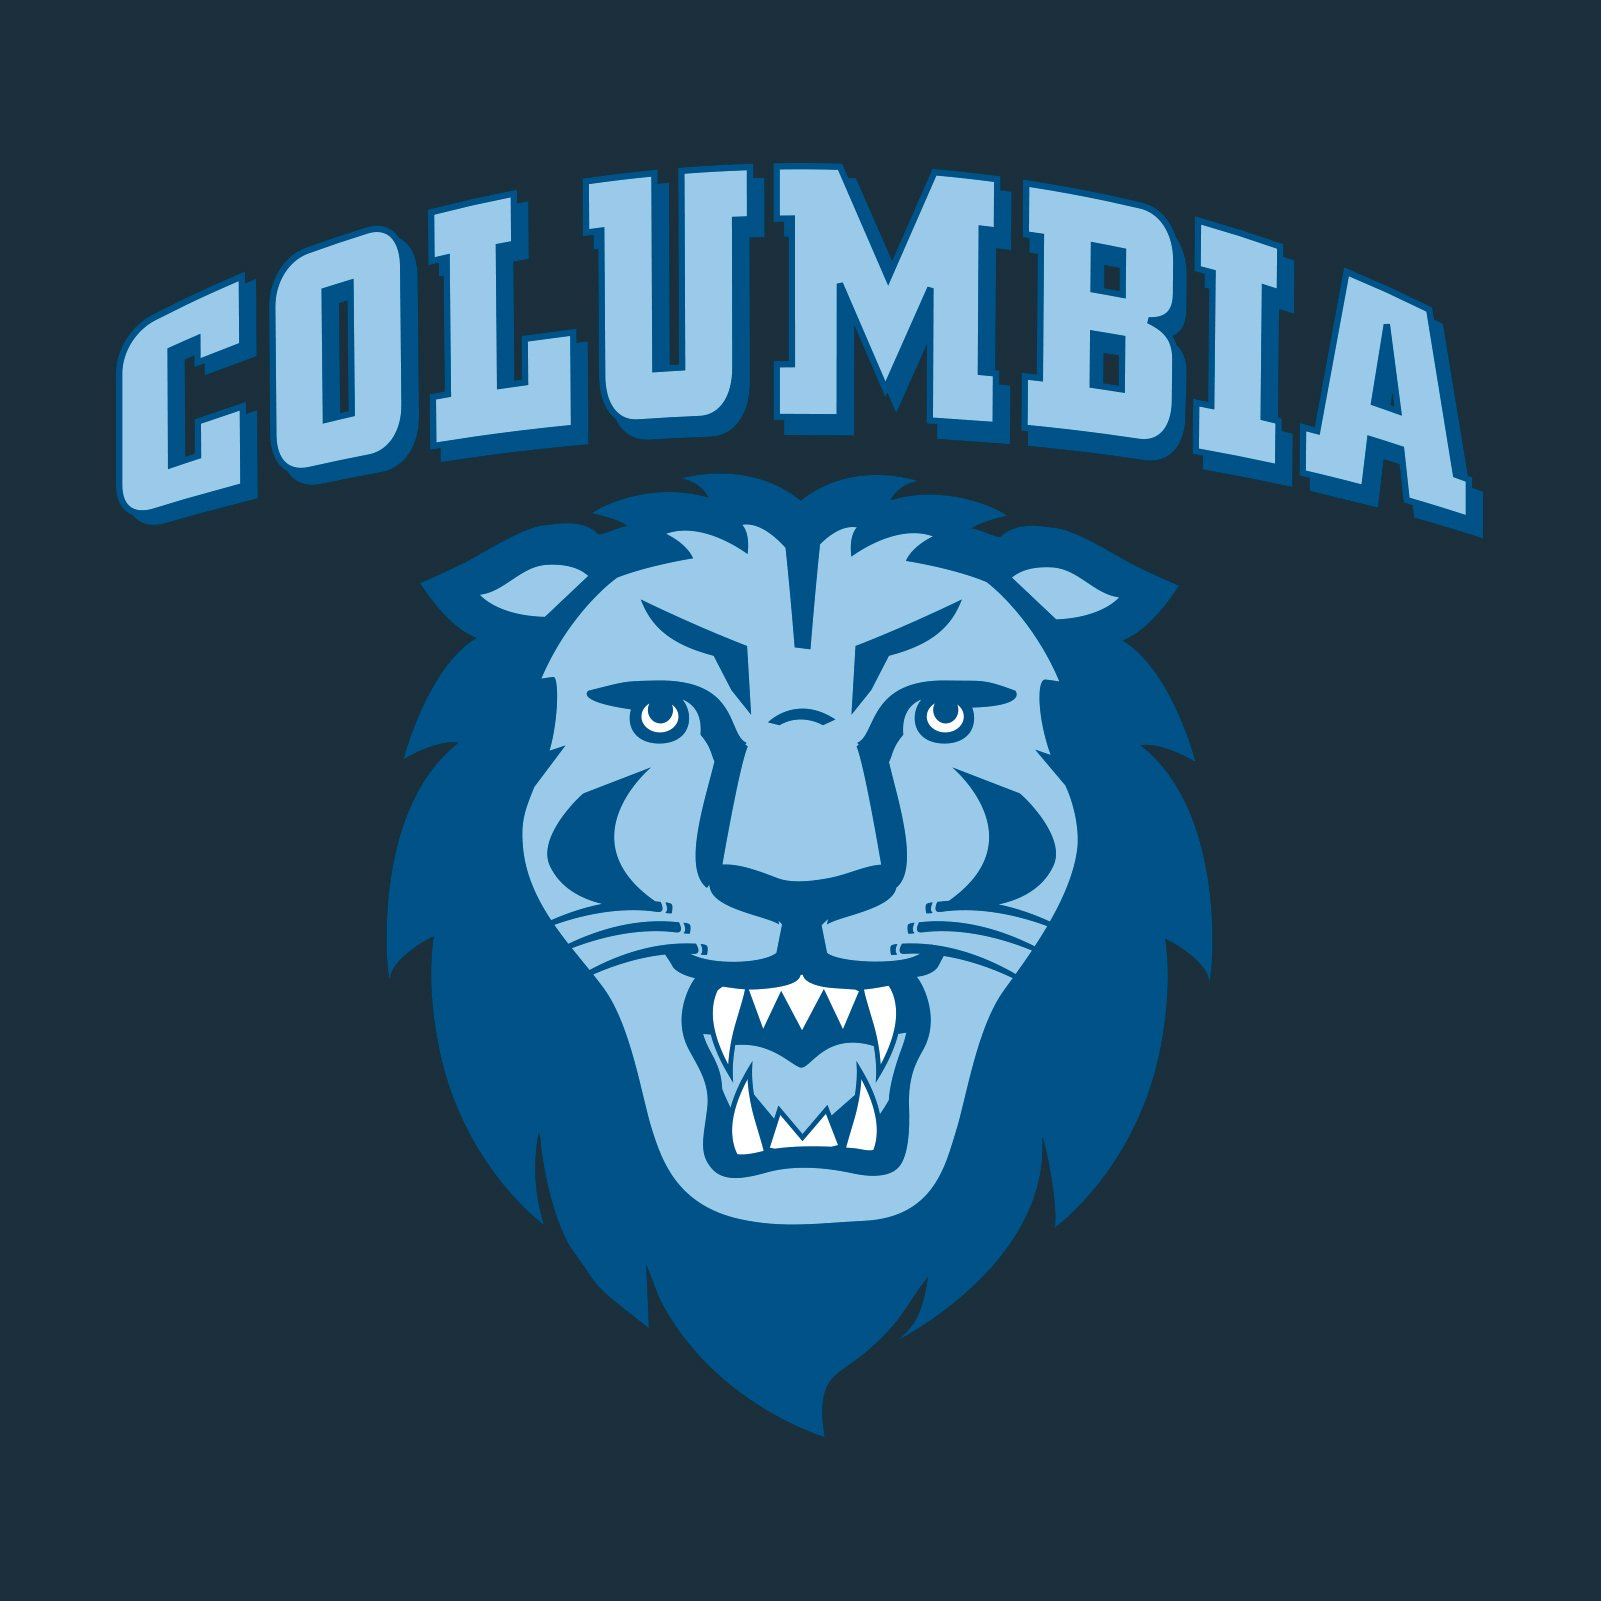 The logo for Columbia University which placed 26th in our ranking for best rowing colleges